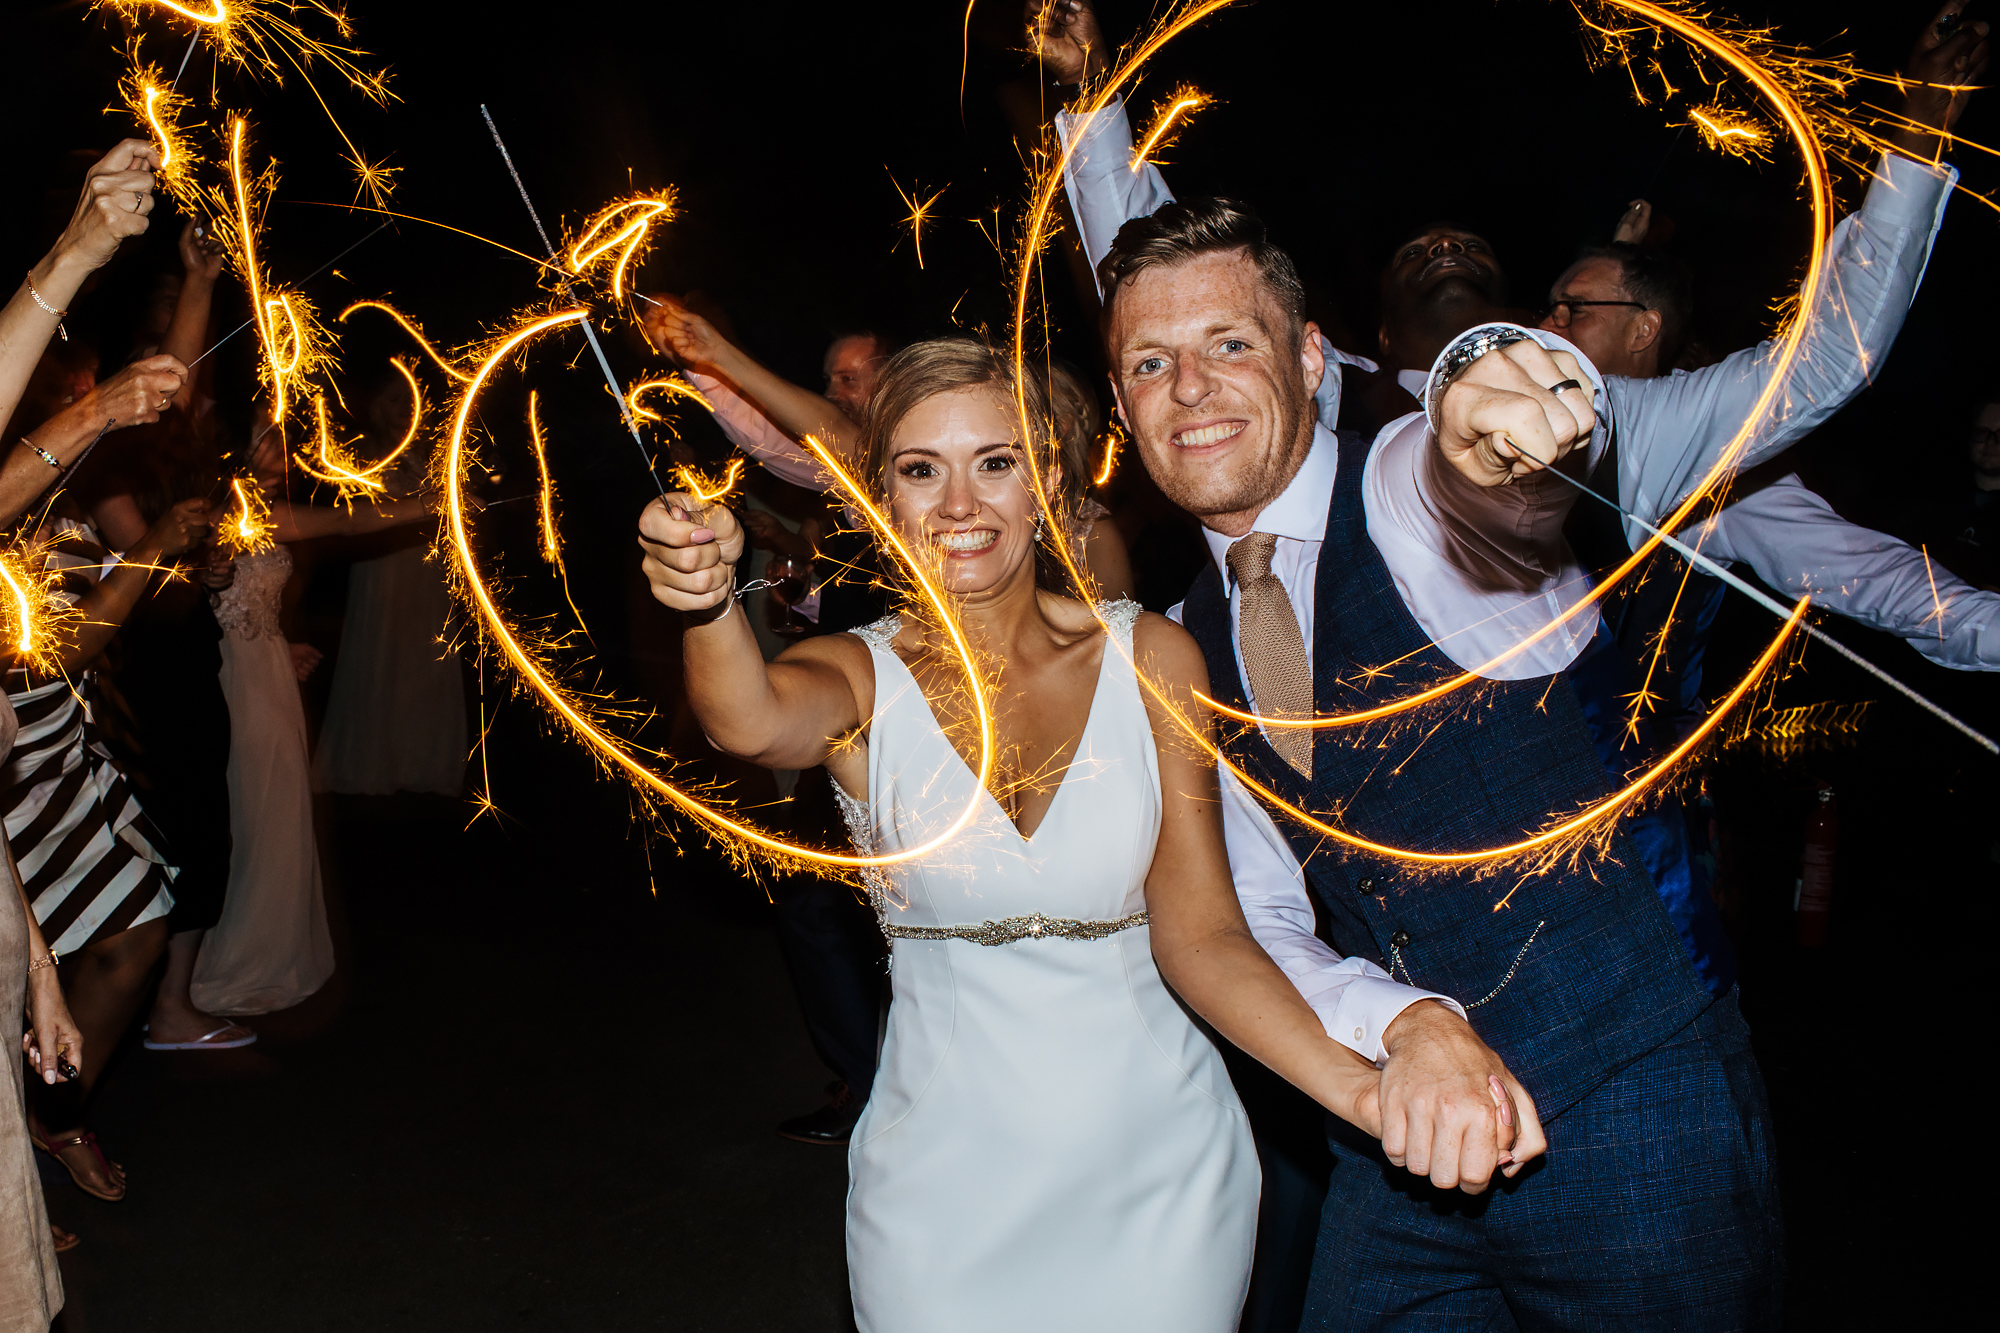 Bride and groom playing with sparklers at a wedding